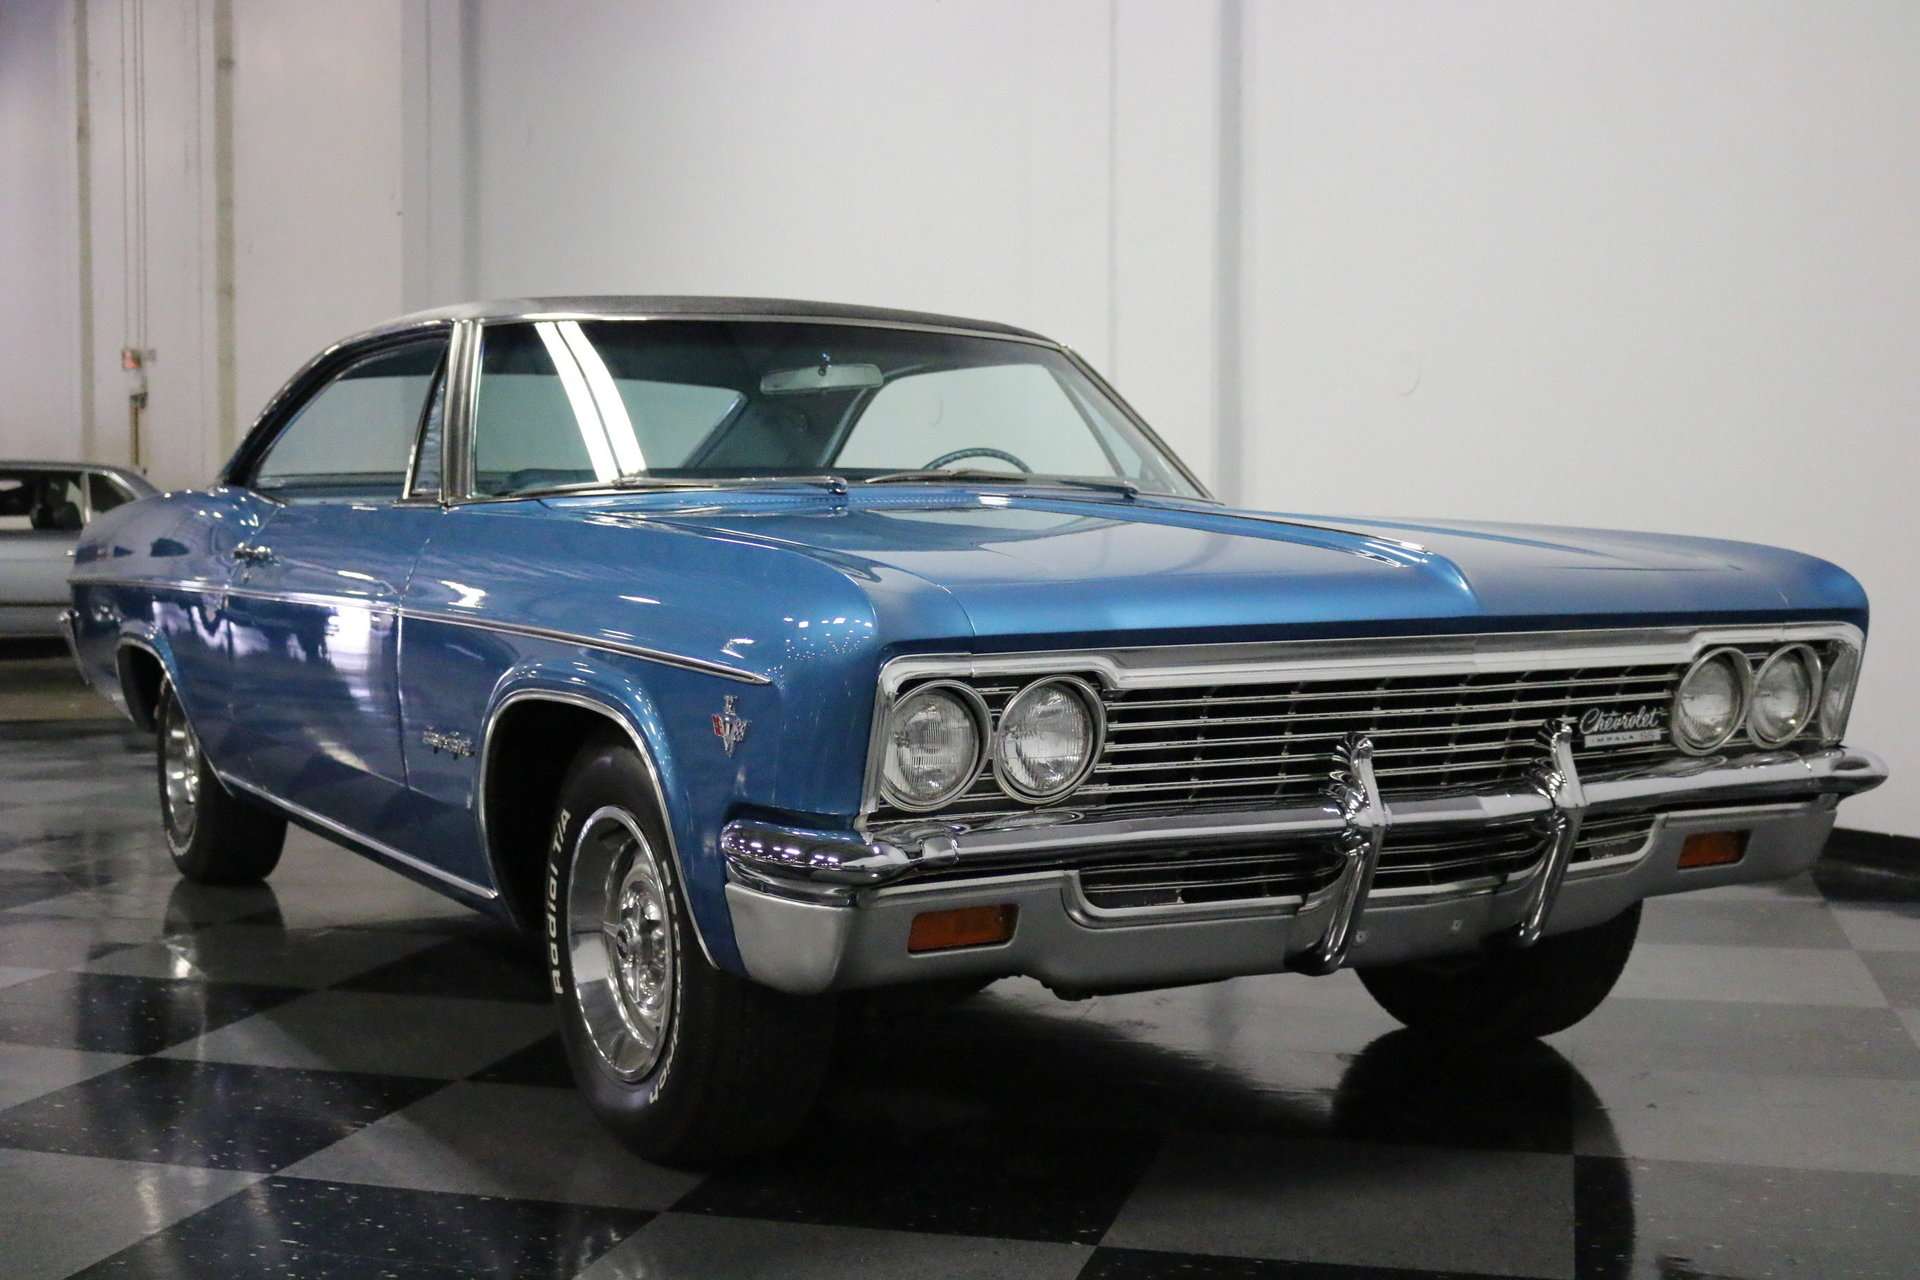 1966 Chevrolet Impala Streetside Classics The Nations Trusted Ss View 360